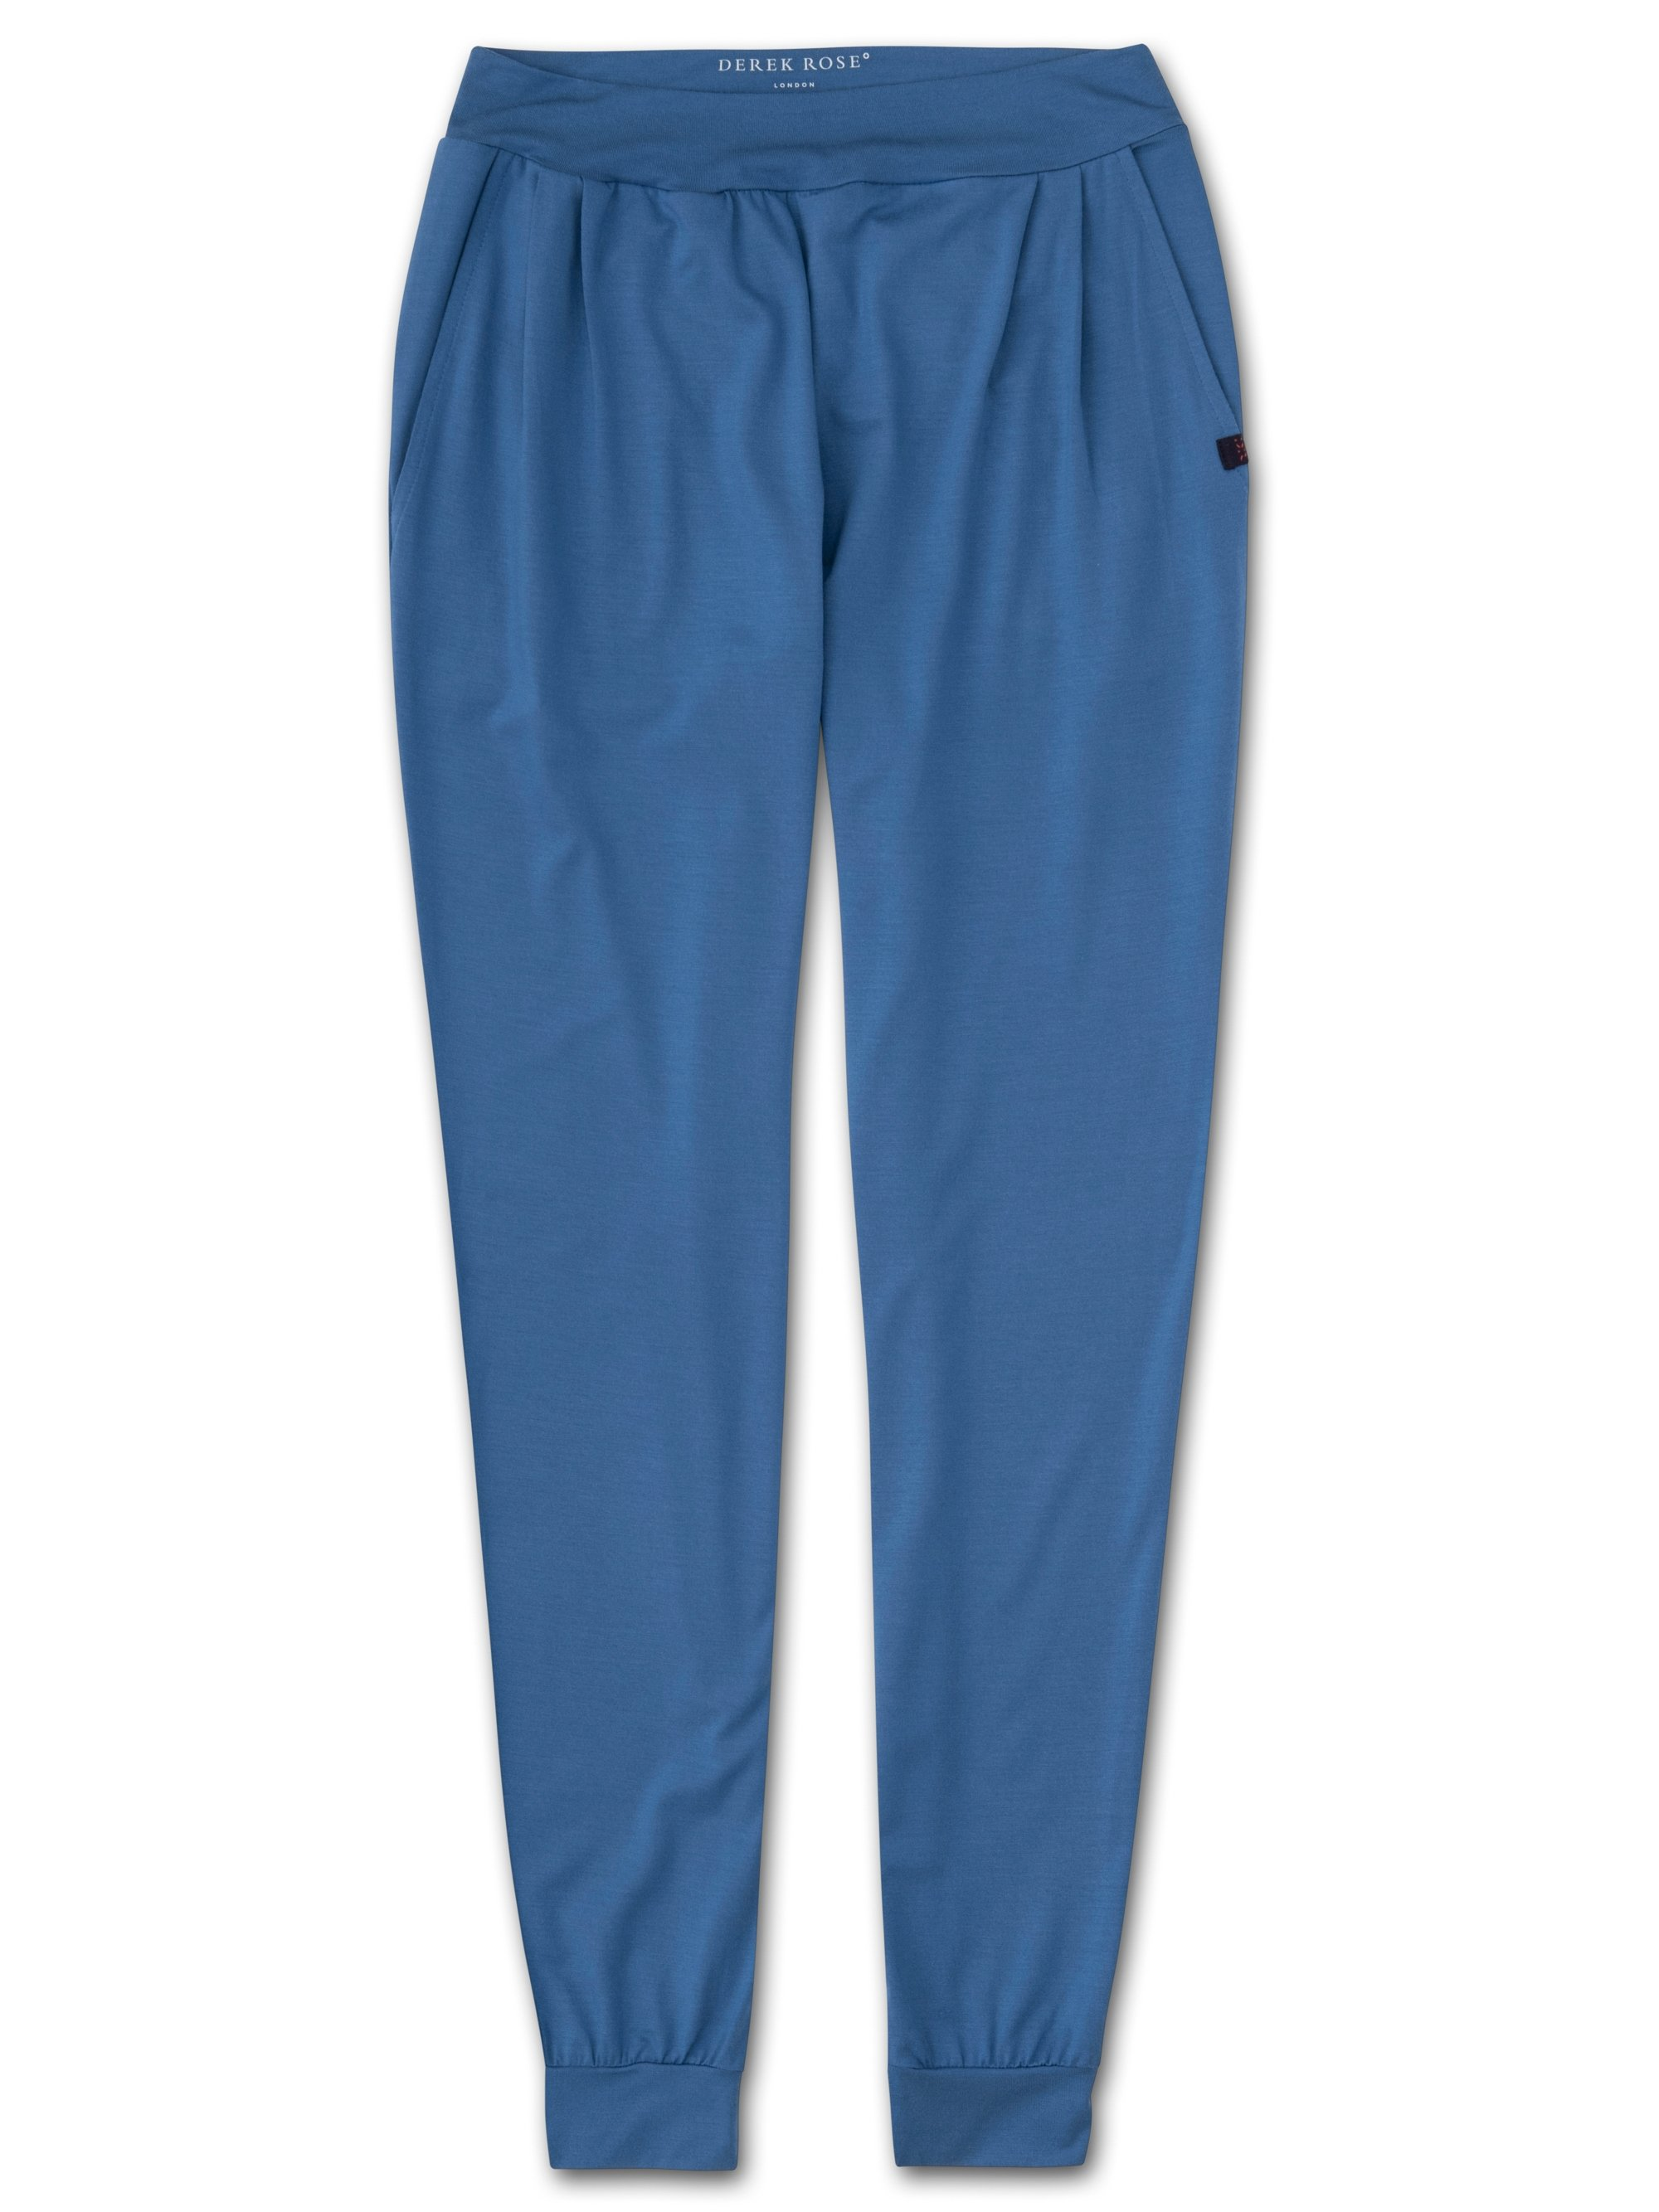 Women's Jersey Leisure Pants Basel 9 Micro Modal Stretch Blue